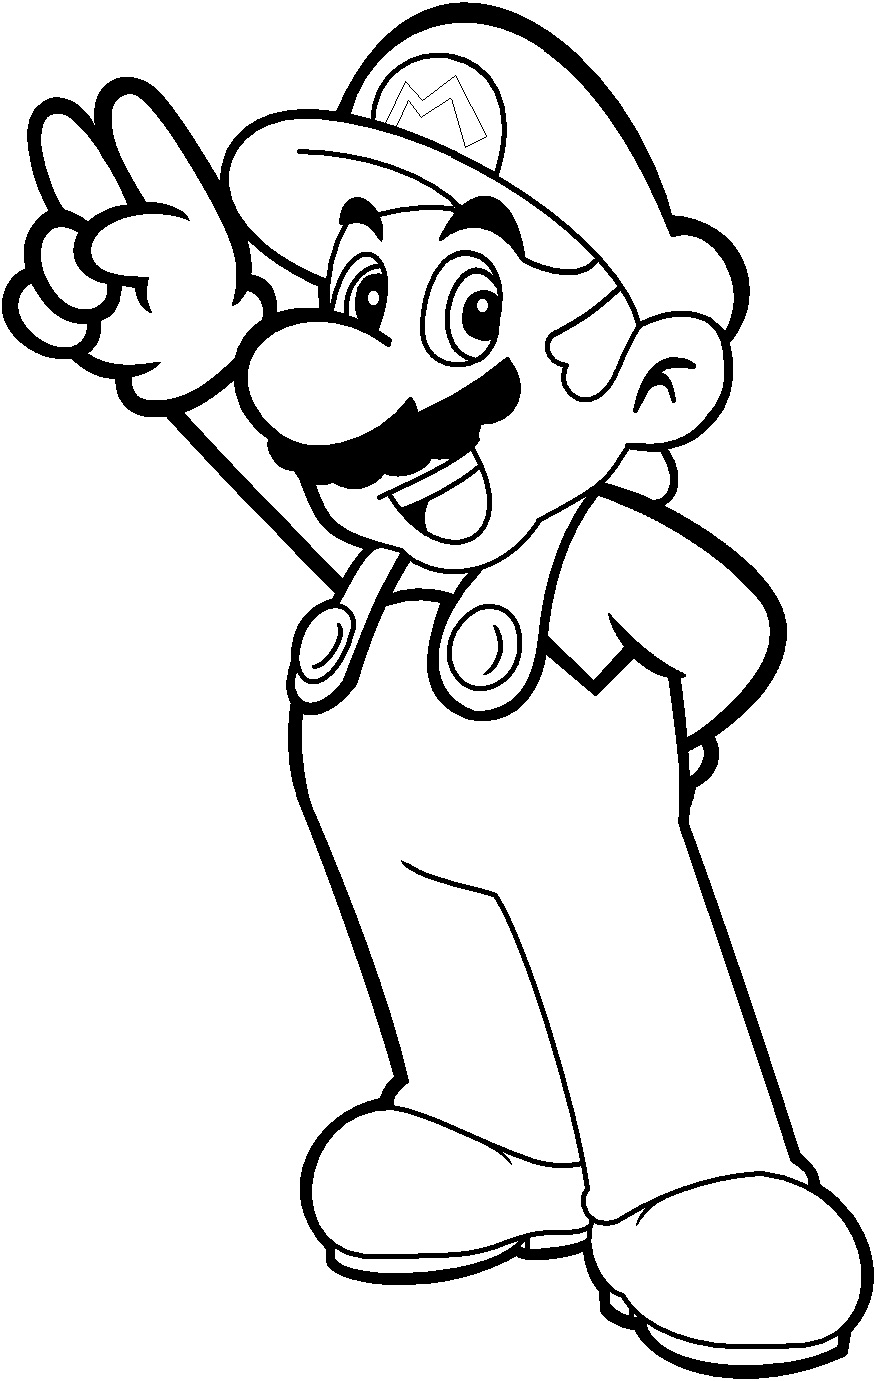 free printable super mario coloring pages free printable super mario pdf coloring pages super coloring free mario pages printable